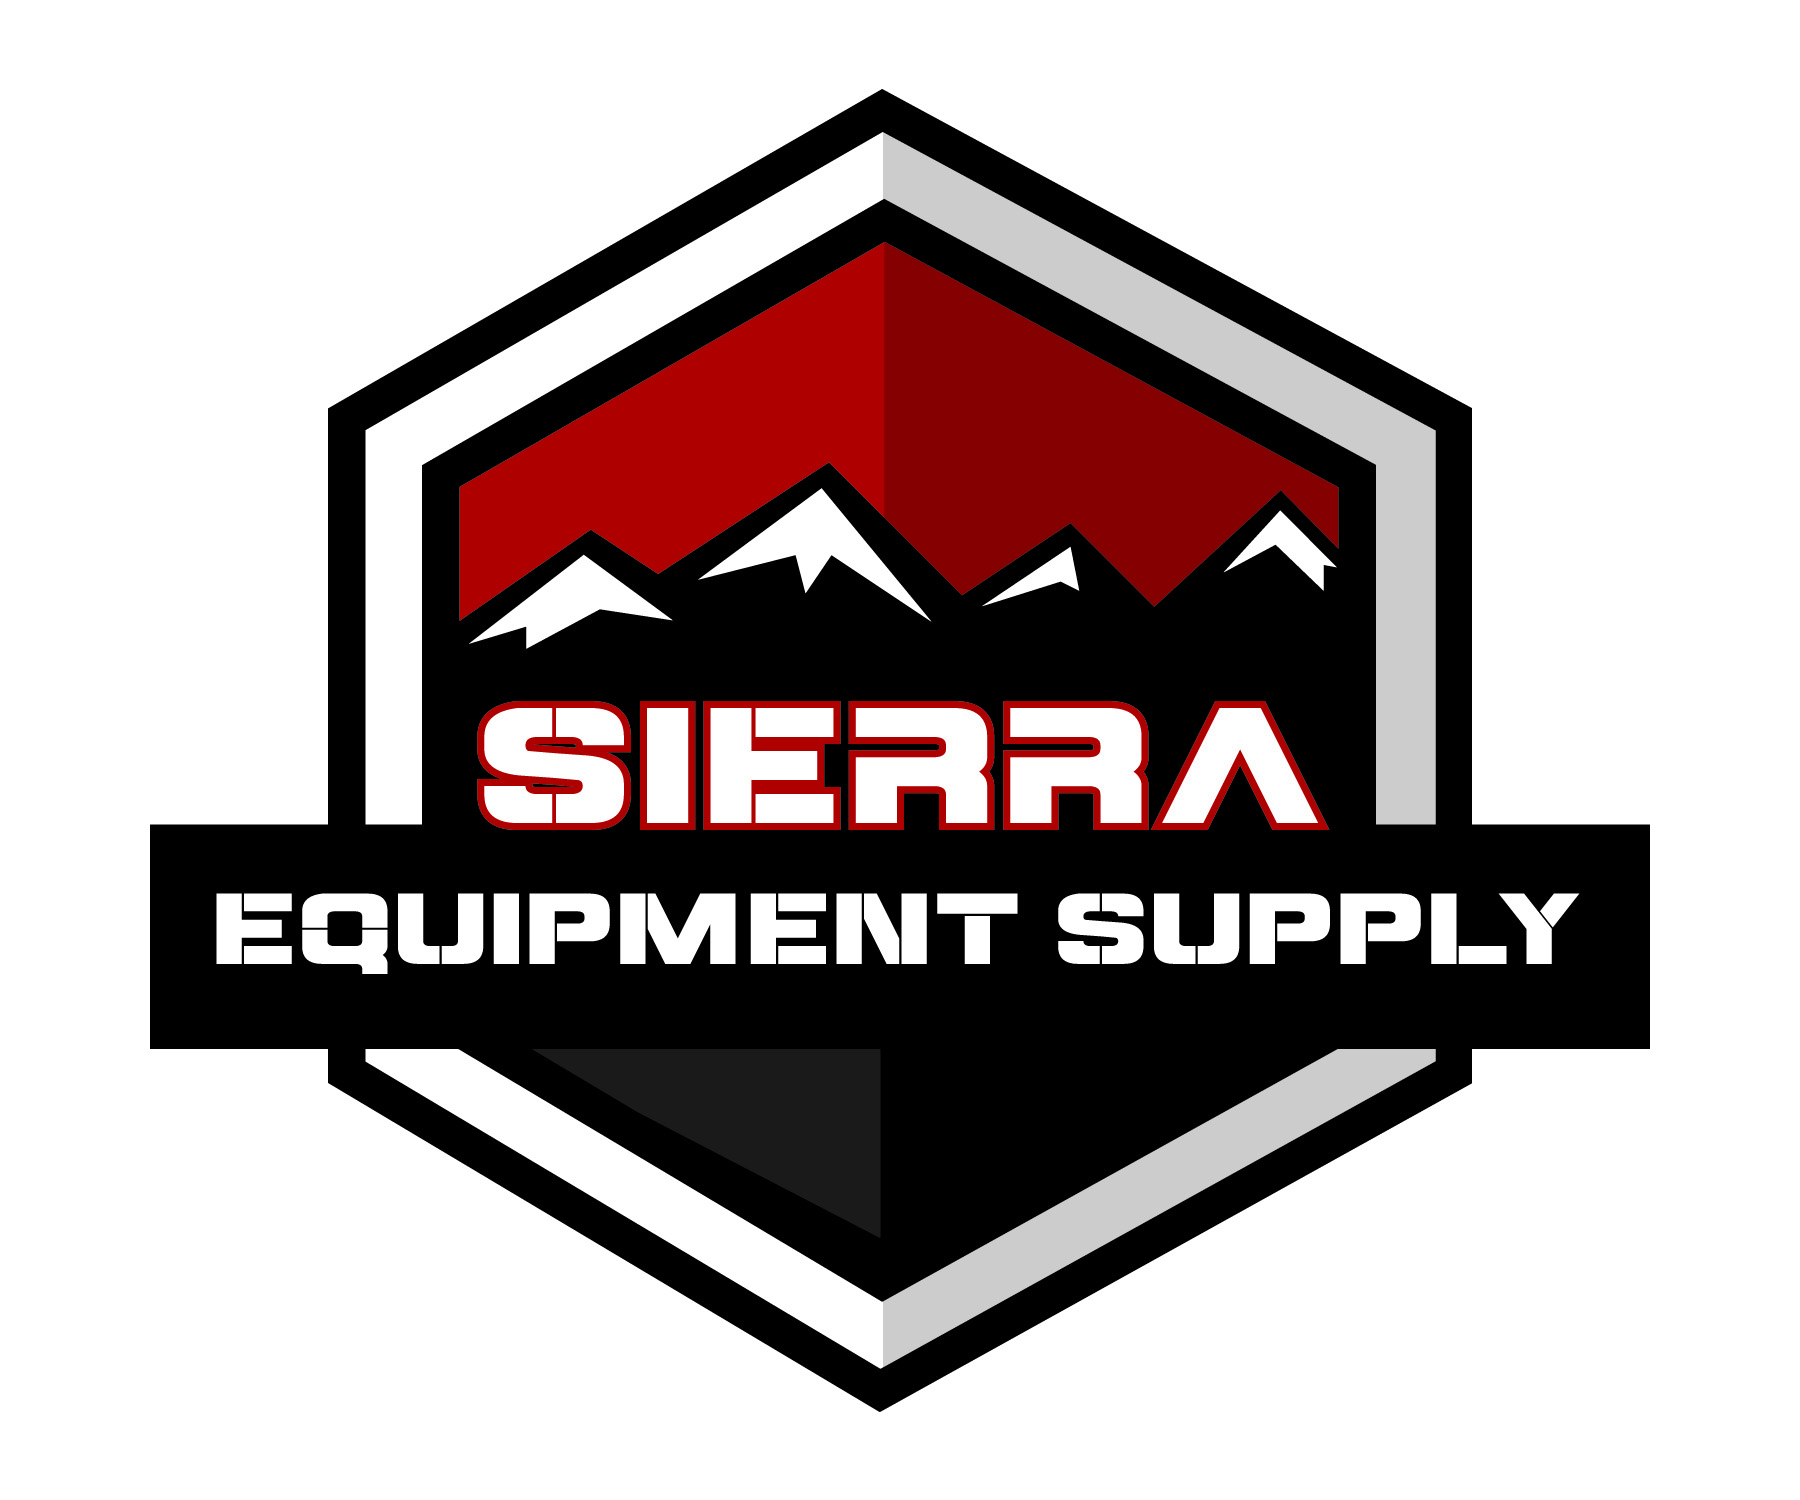 Sierra Equipment Supply